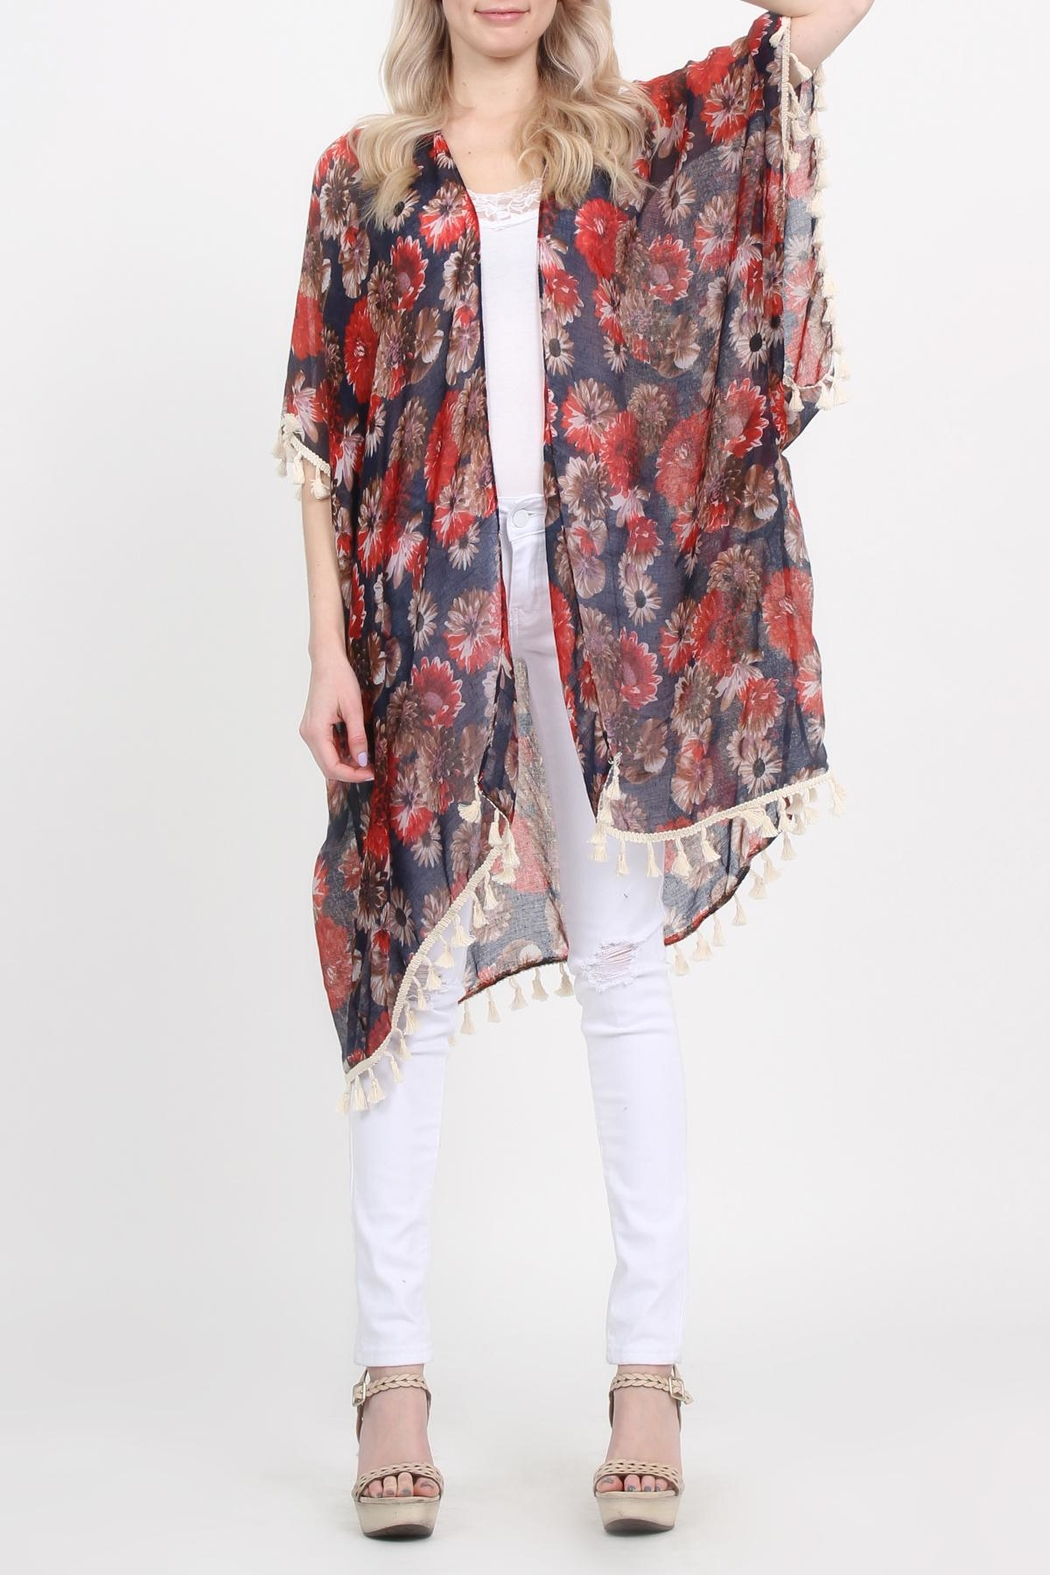 Riah Fashion Floral-Print Semi-Sheer Tassel-Cardigan - Front Cropped Image